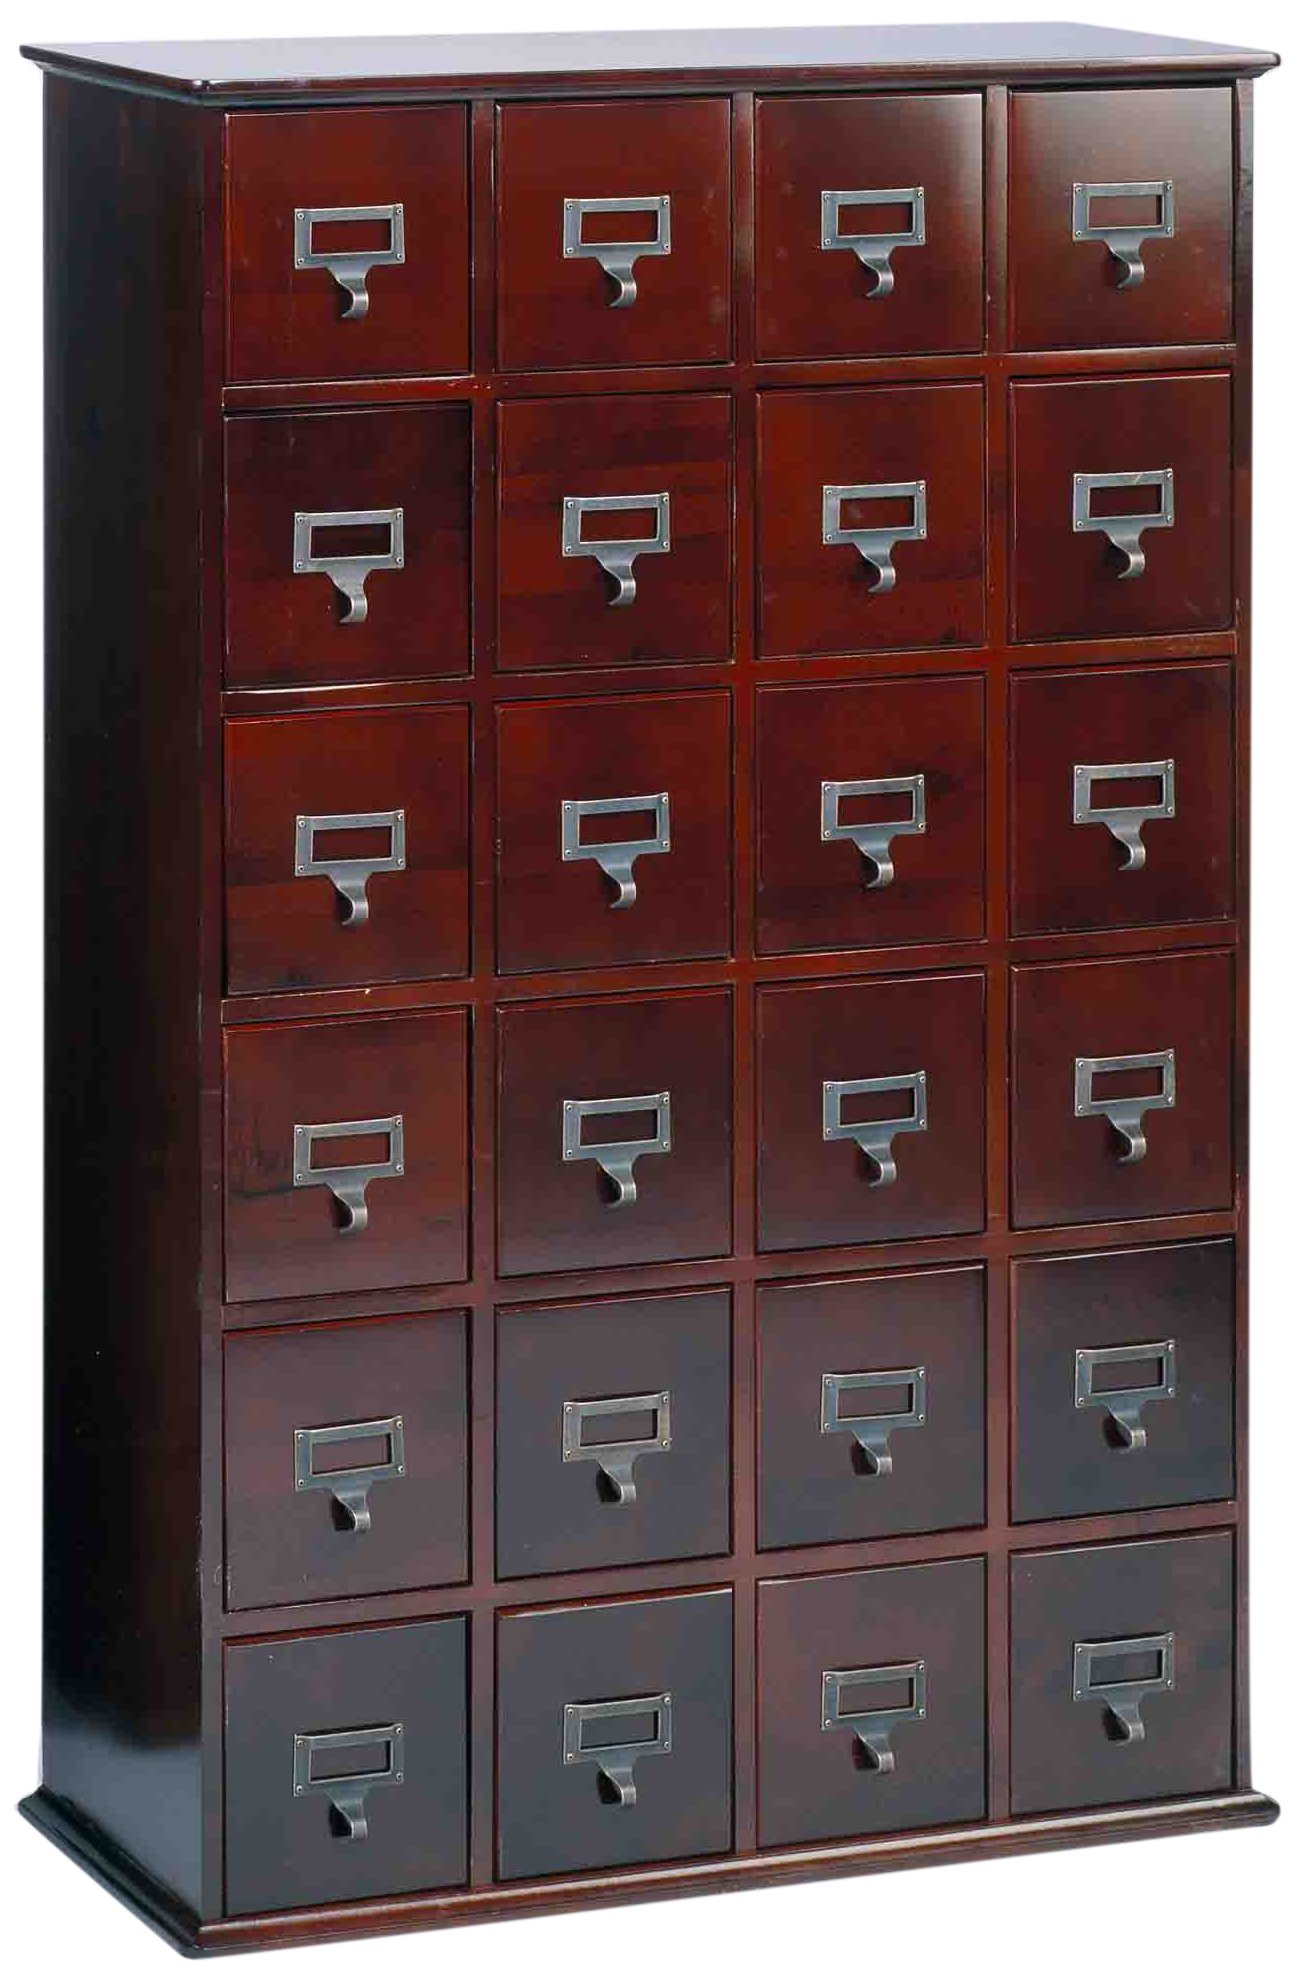 Leslie Dame CD-456C Solid Oak Library Card File Media Cabinet, 24 Drawers, Cherry by Leslie Dame